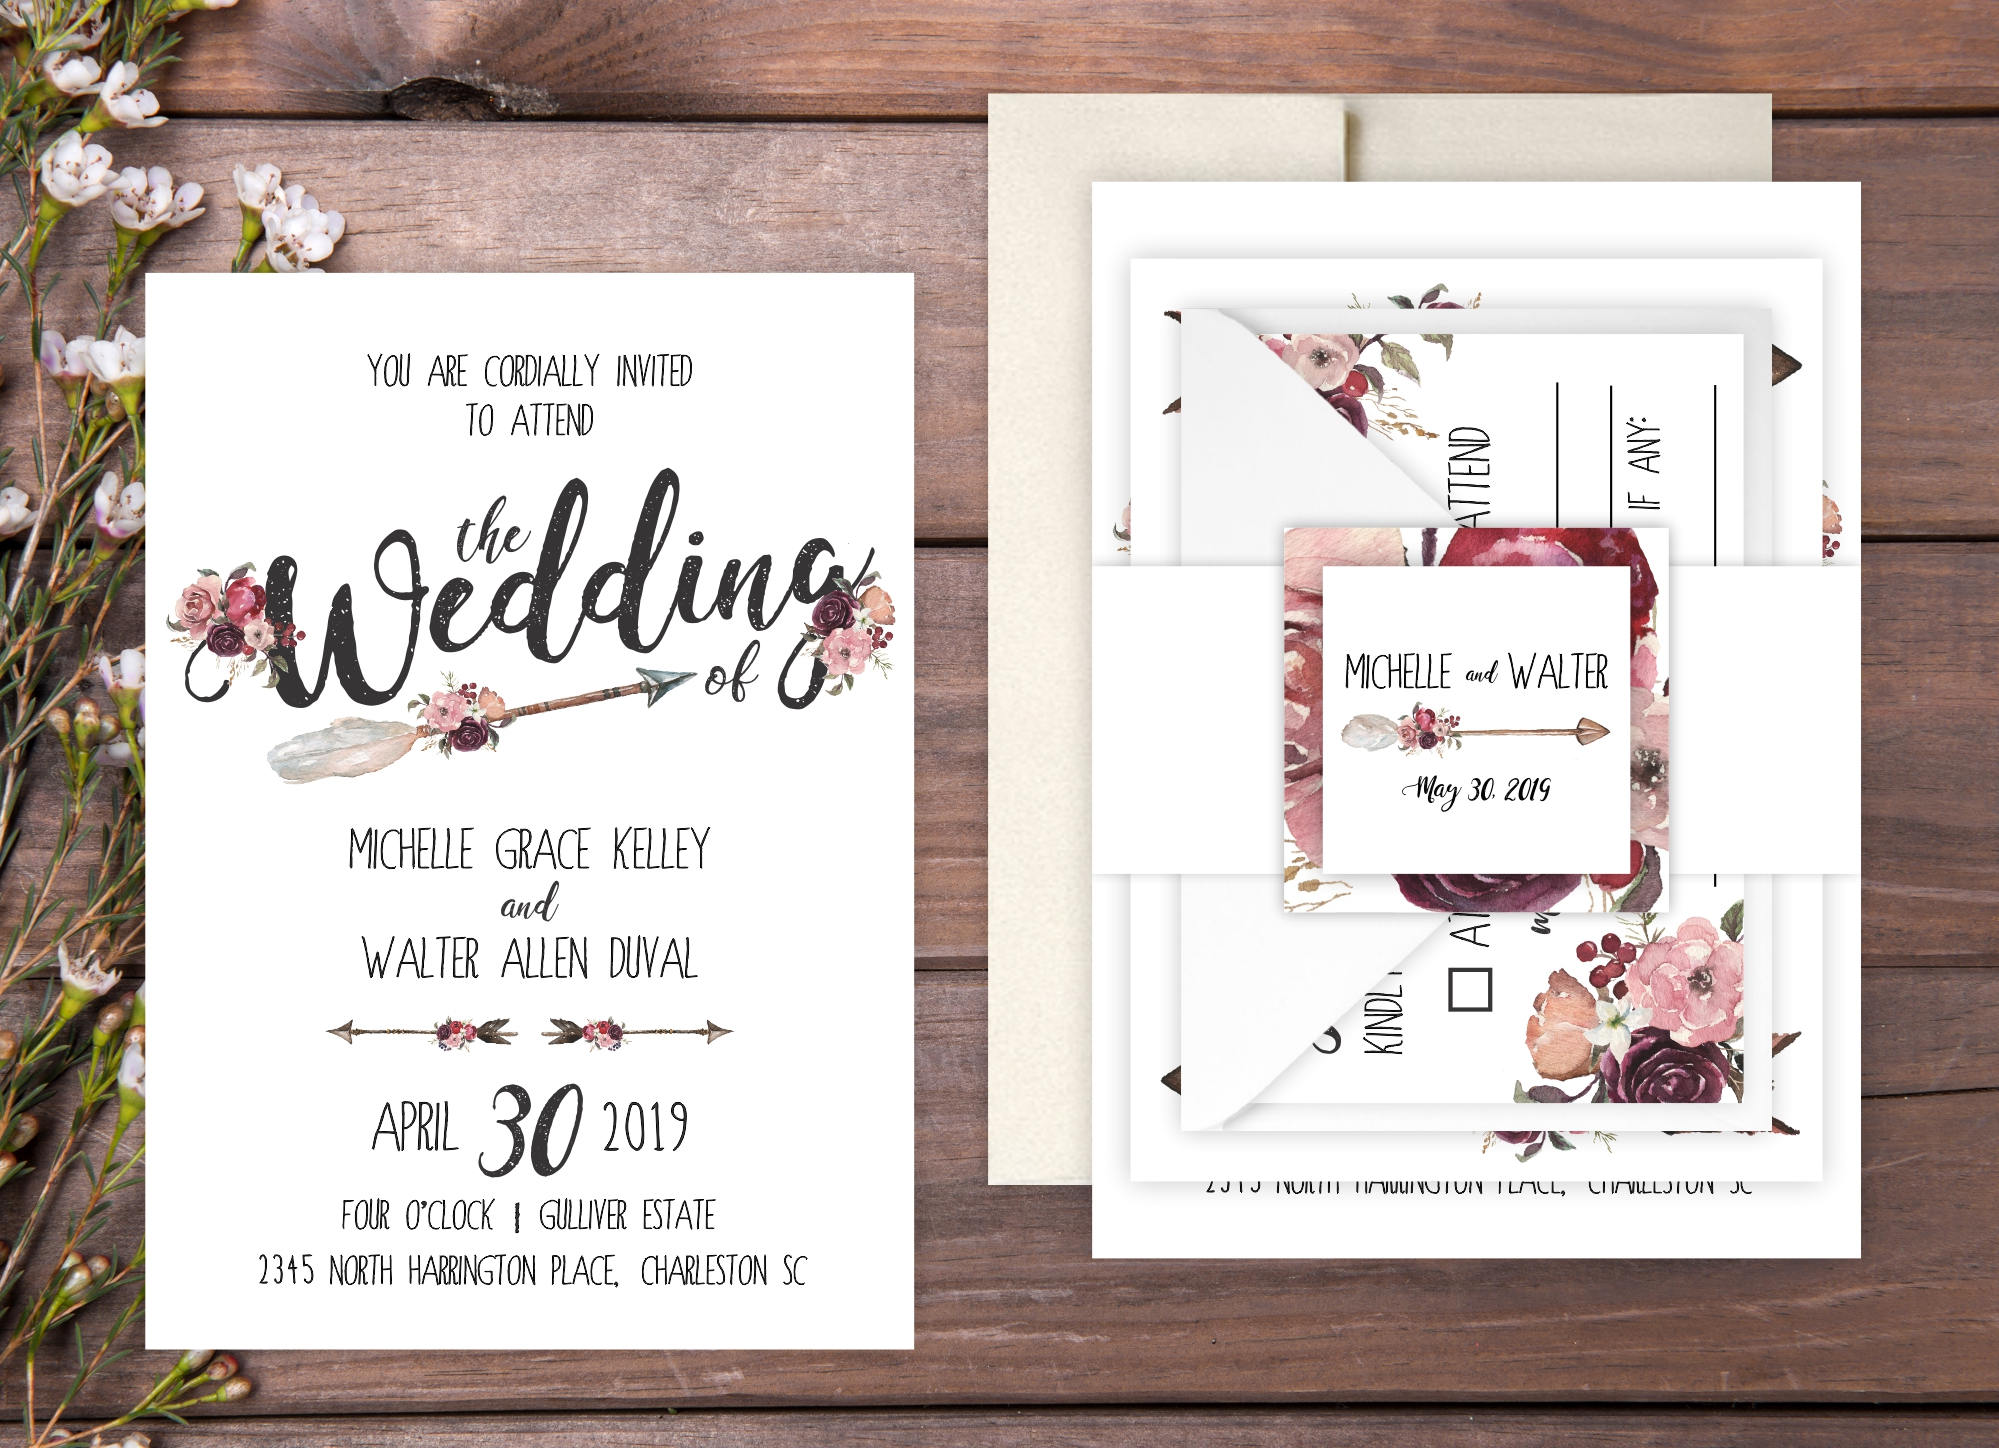 How To Start A Wedding Invitation: Wedding Invitations DEPOSIT TO START Bohemian Garden Suite